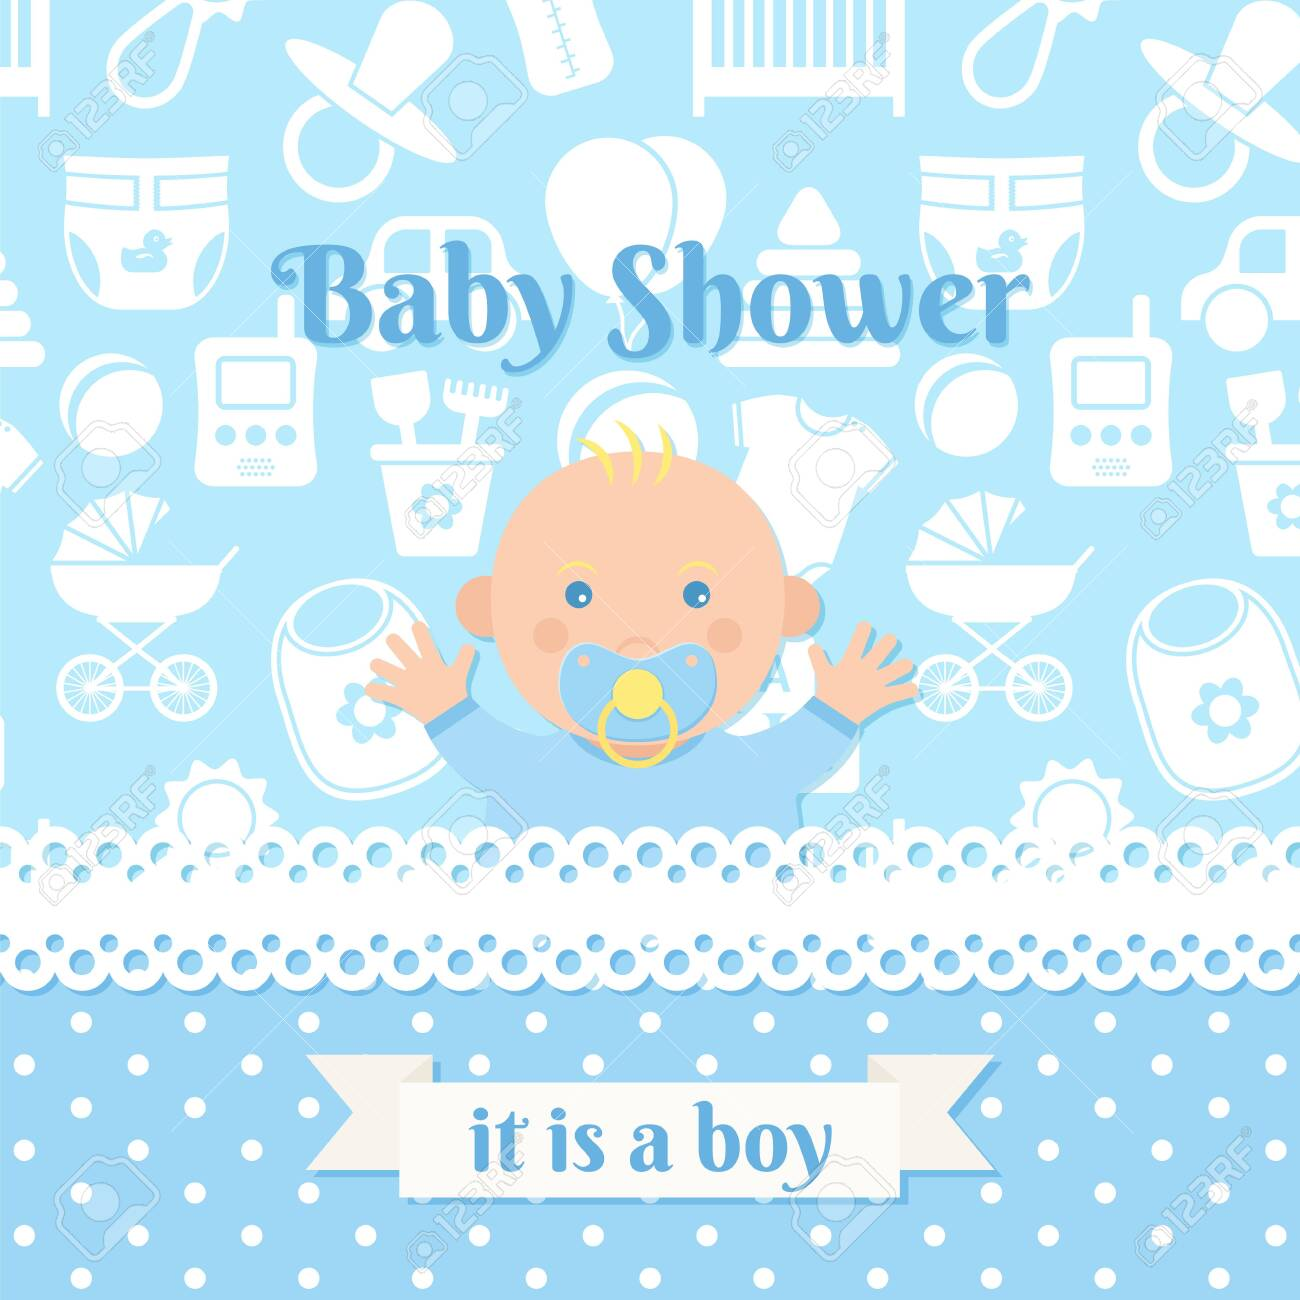 Baby Shower Boy Invite Card Vector Baby Banner Blue Design Royalty Free Cliparts Vectors And Stock Illustration Image 122687702